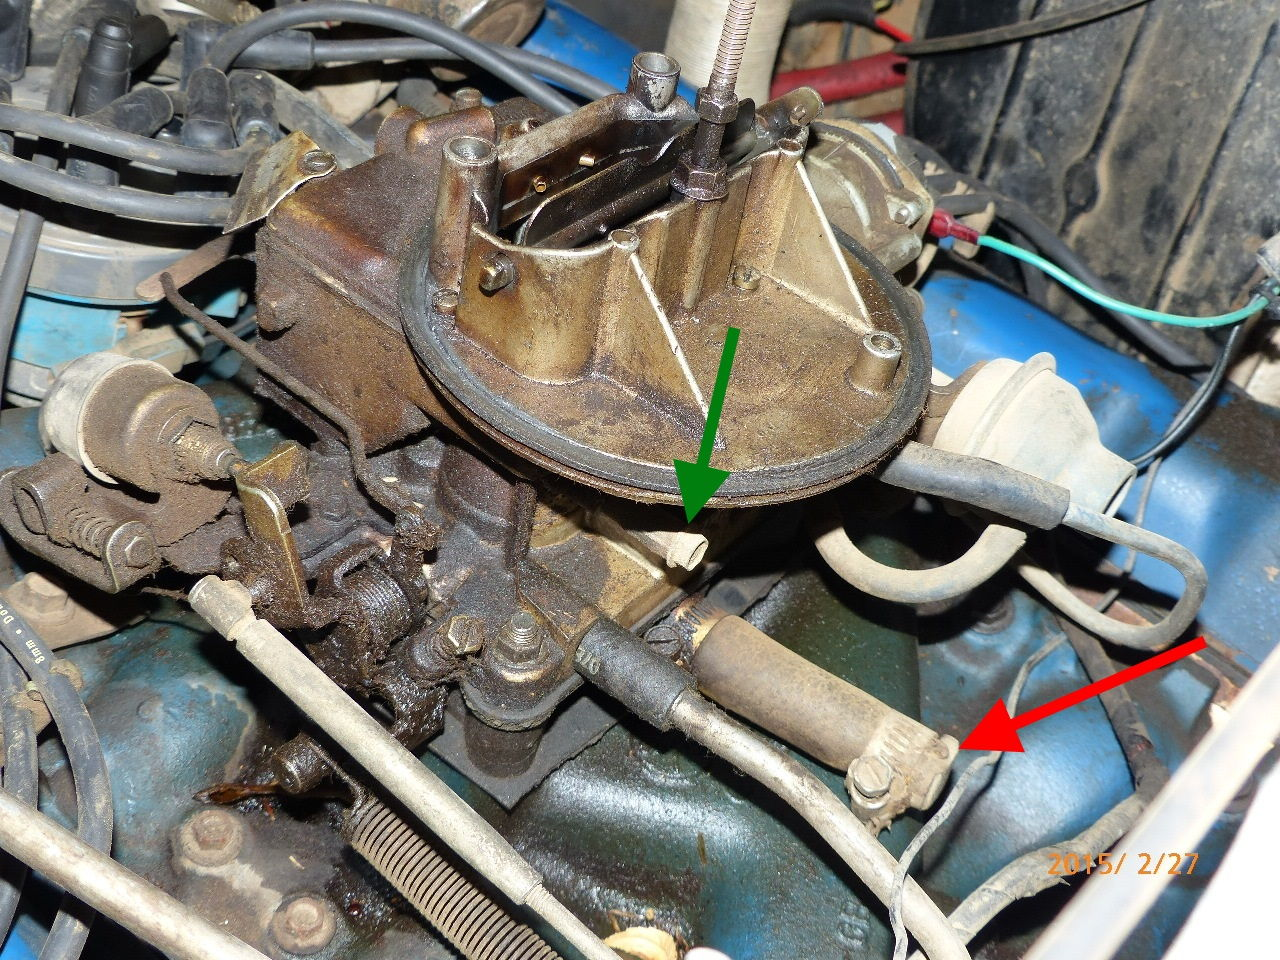 Mag o1 in addition Starter Motor Solenoid Wiring Diagram also 334 67 Ford Galaxie 4 Door Wallpaper 4 likewise Exclusive Say Goodbye To Chip Tuning Open Can Bus Going Away In Two Model Cycles also Wiring Diagram For 1999 Ford Ranger Xlt. on 1984 ford mustang wiring diagram